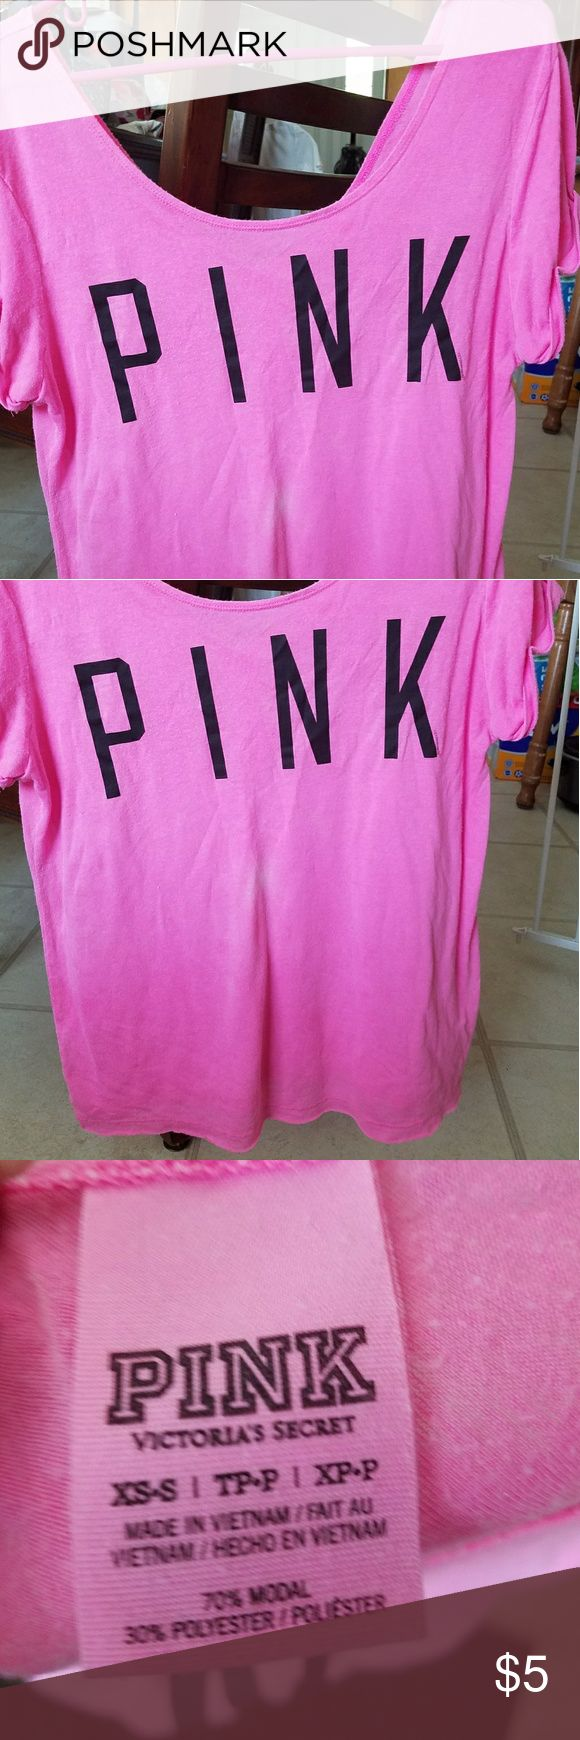 VS PINK hot pink shirt VS PINK loose fitting lounge shirt. in good condition besides small white spot on front of shirt (as pictured above) size xs PINK Victoria's Secret Tops